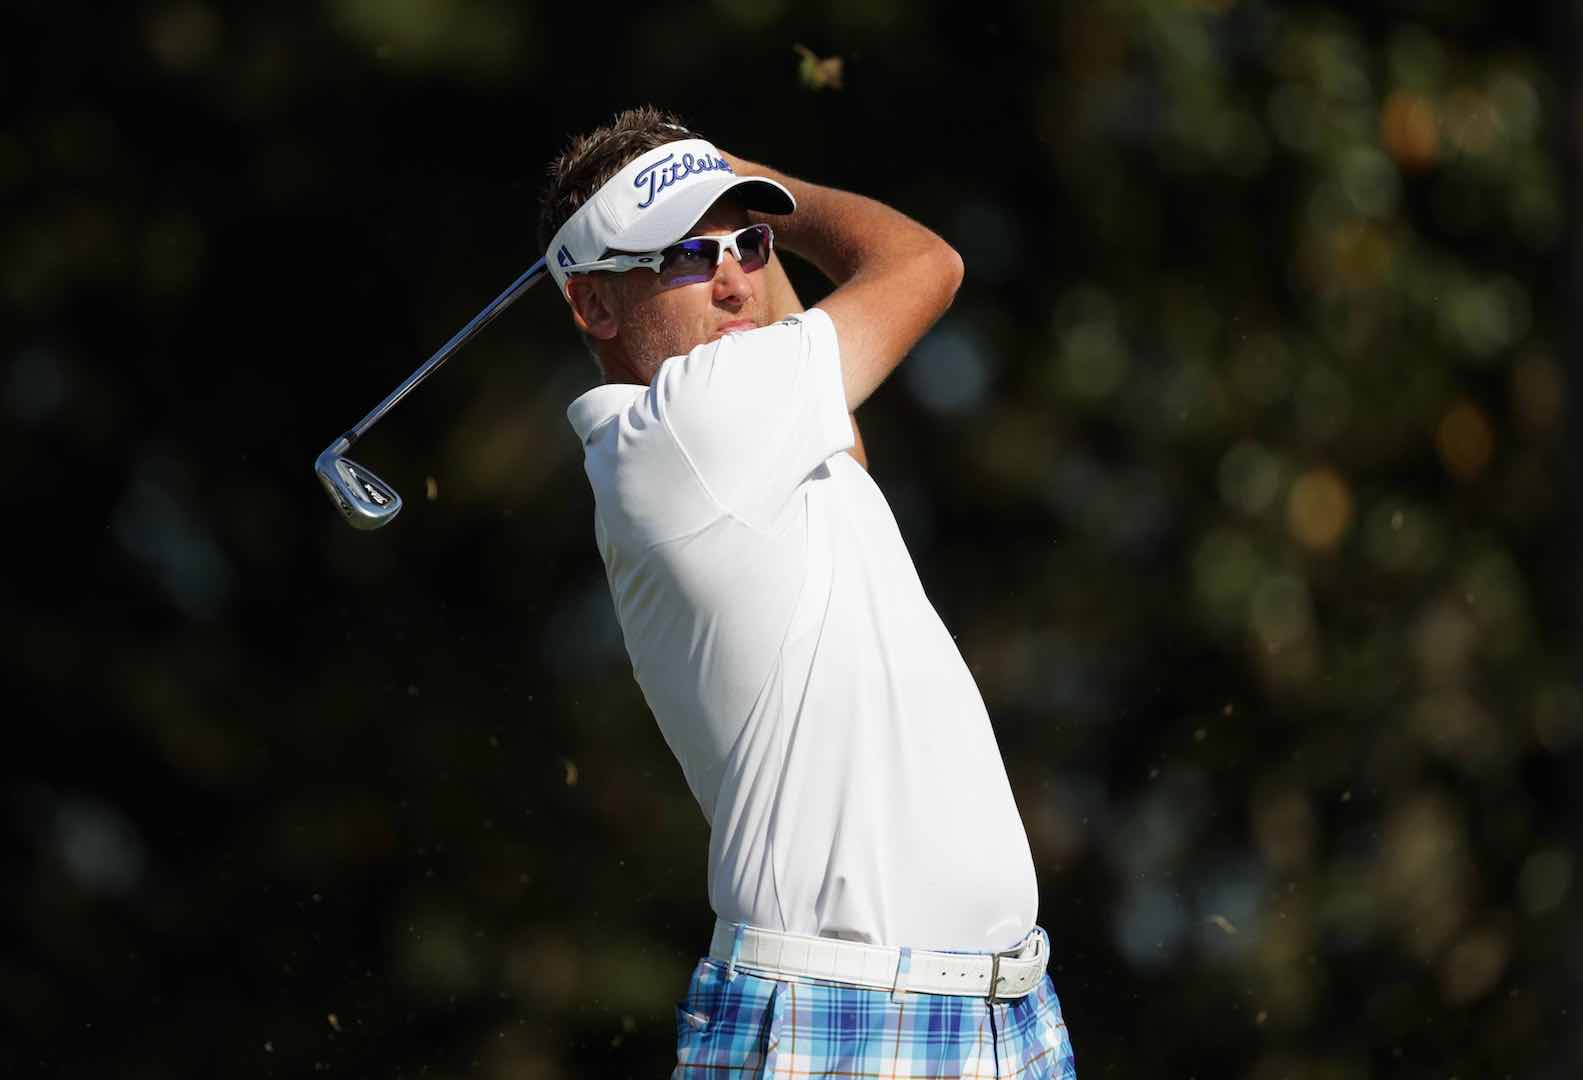 Branden Grace sets early pace